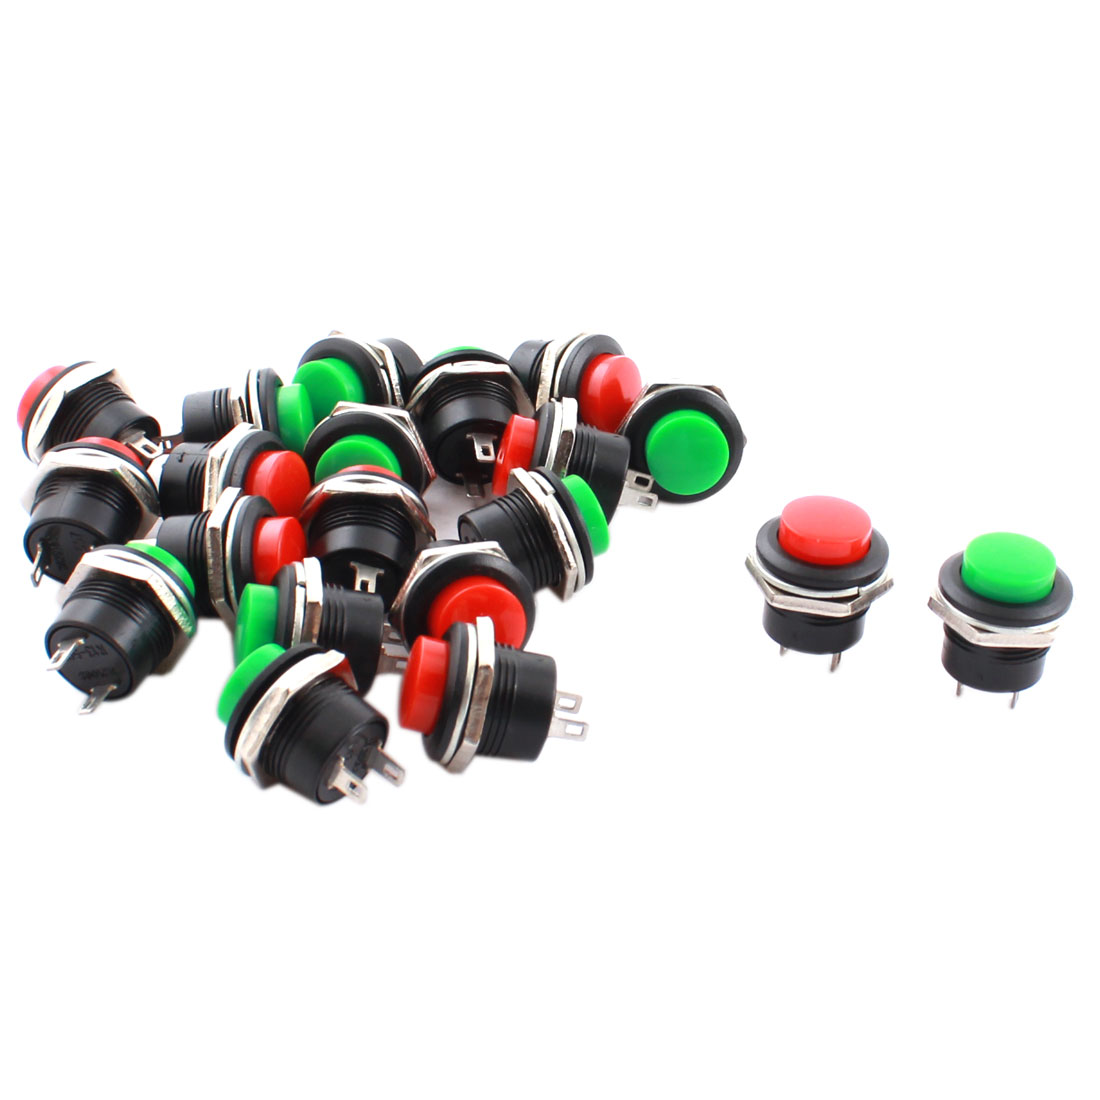 20 Pcs AC 250V 3A 16mm Panel Mounting SPST Momentary Pushbutton Switch